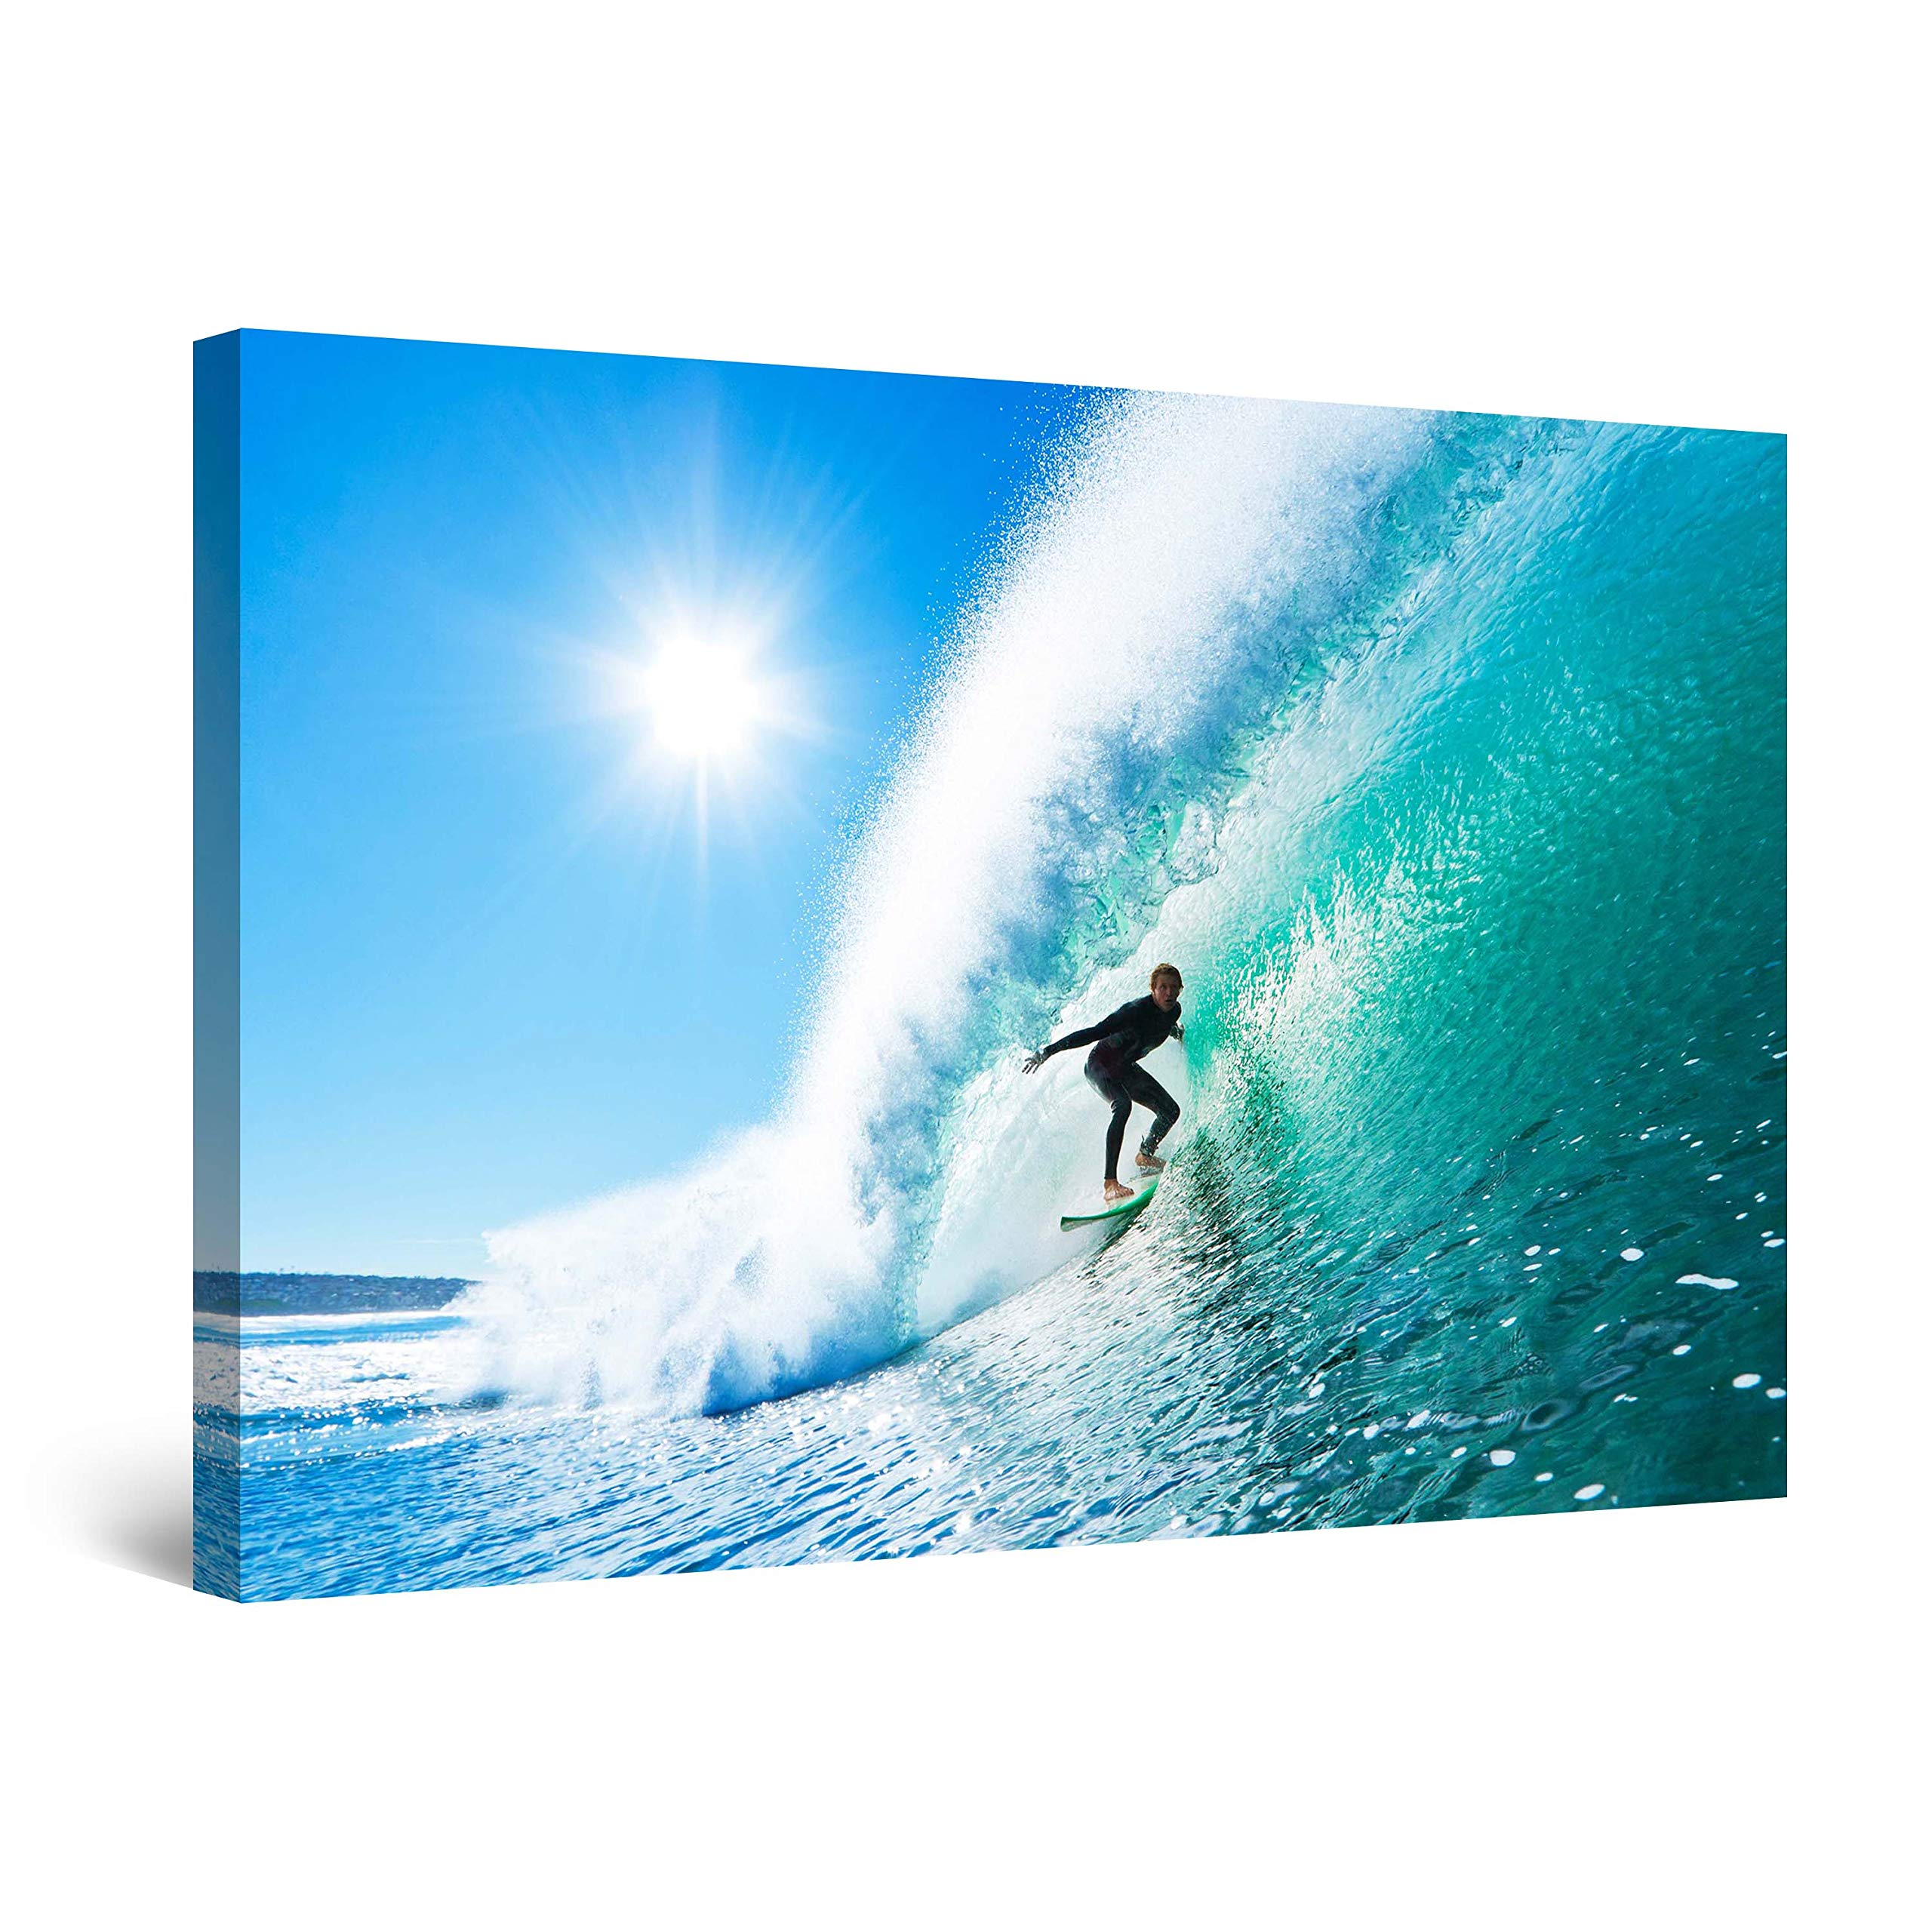 Startonight Wall Art Canvas Surfer on The Perfect Wave, Beach Framed 24 x 36 Inches